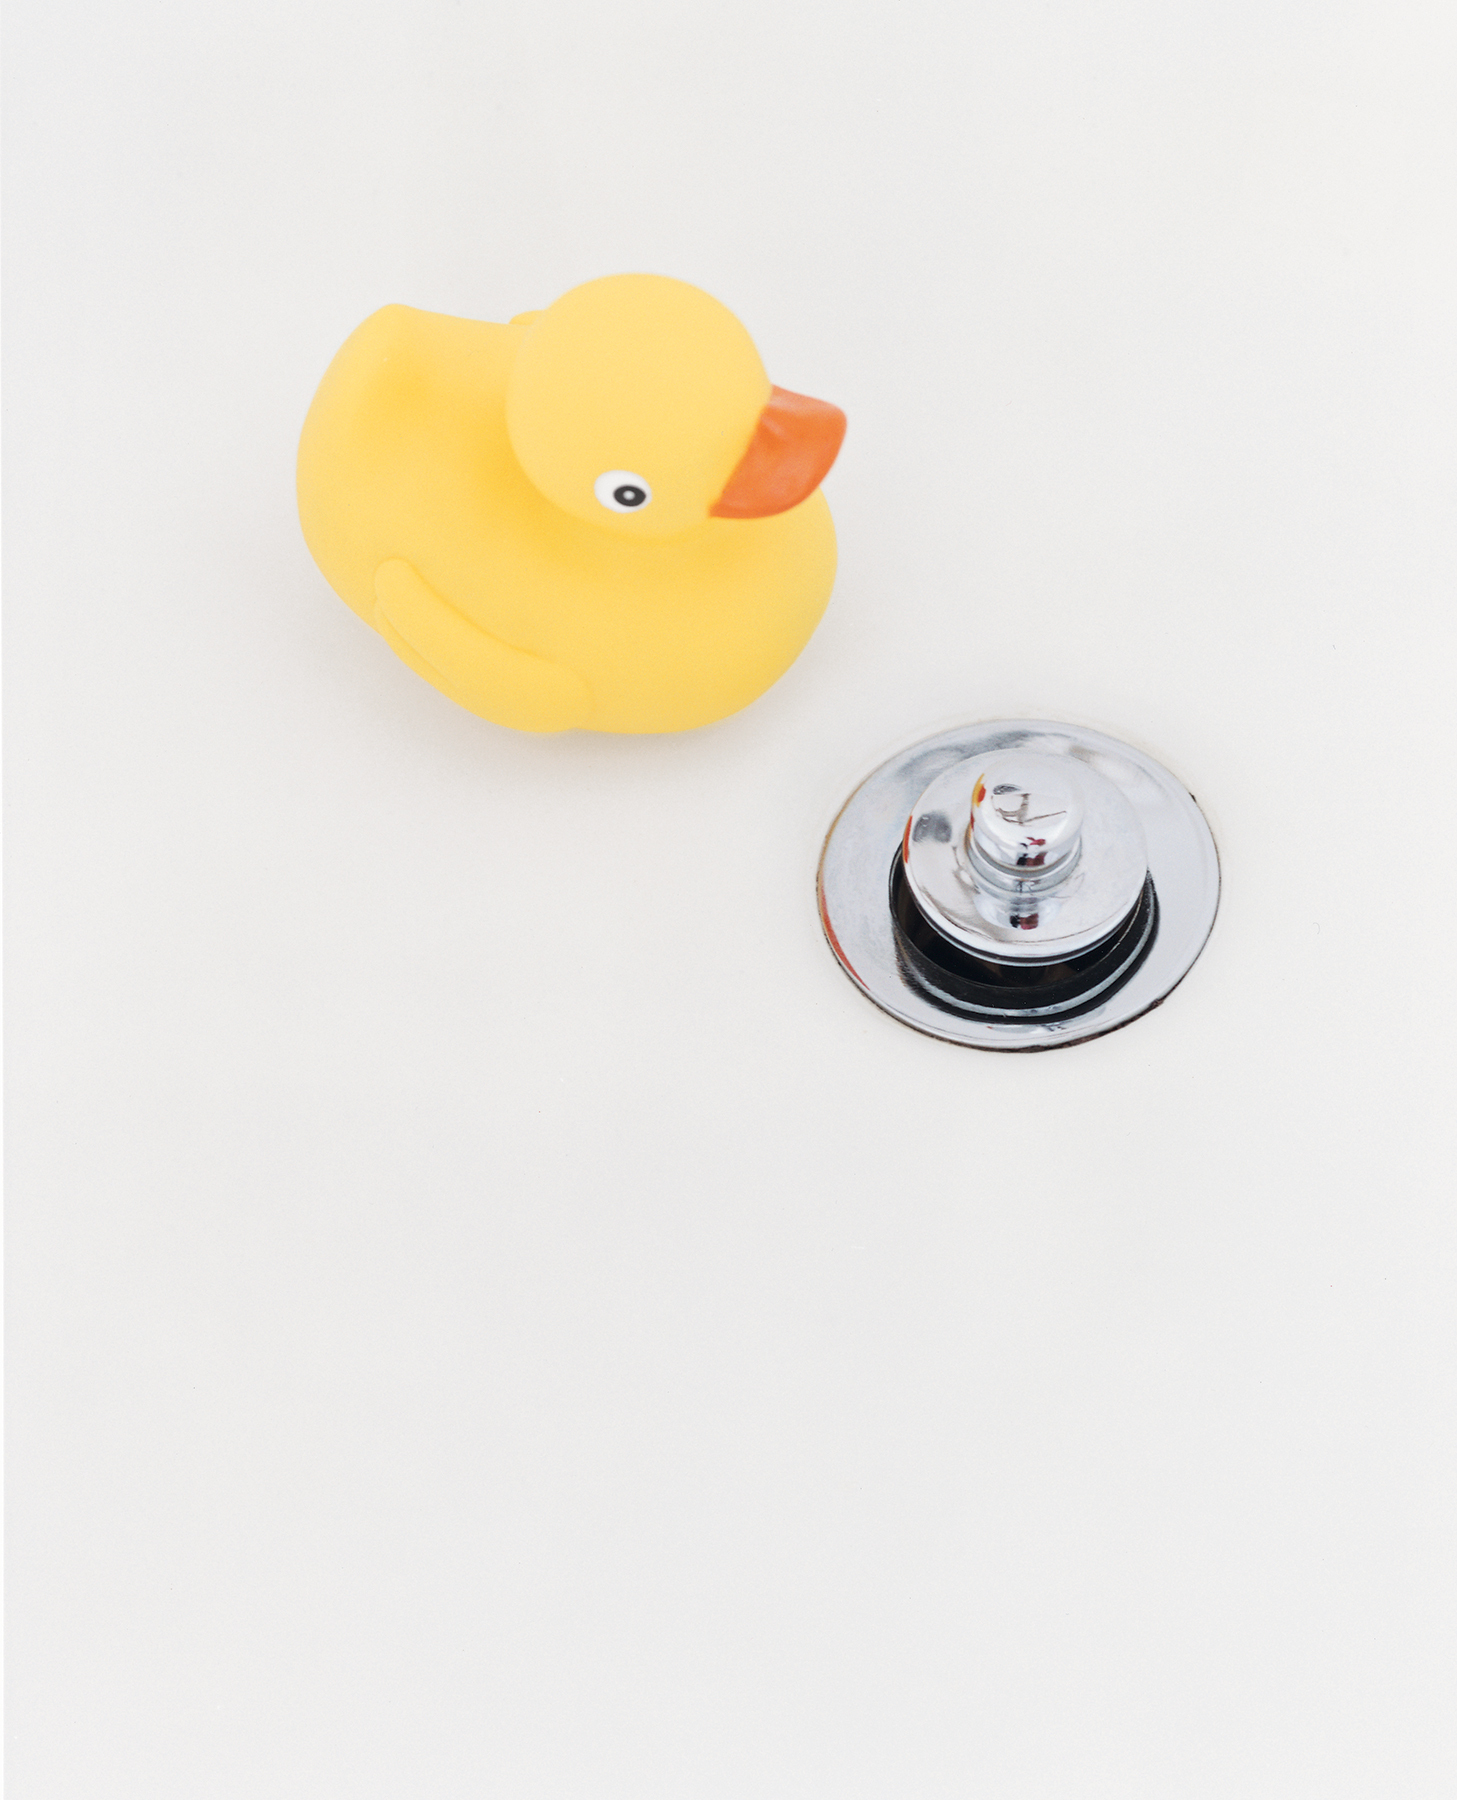 Rubber ducky and drain